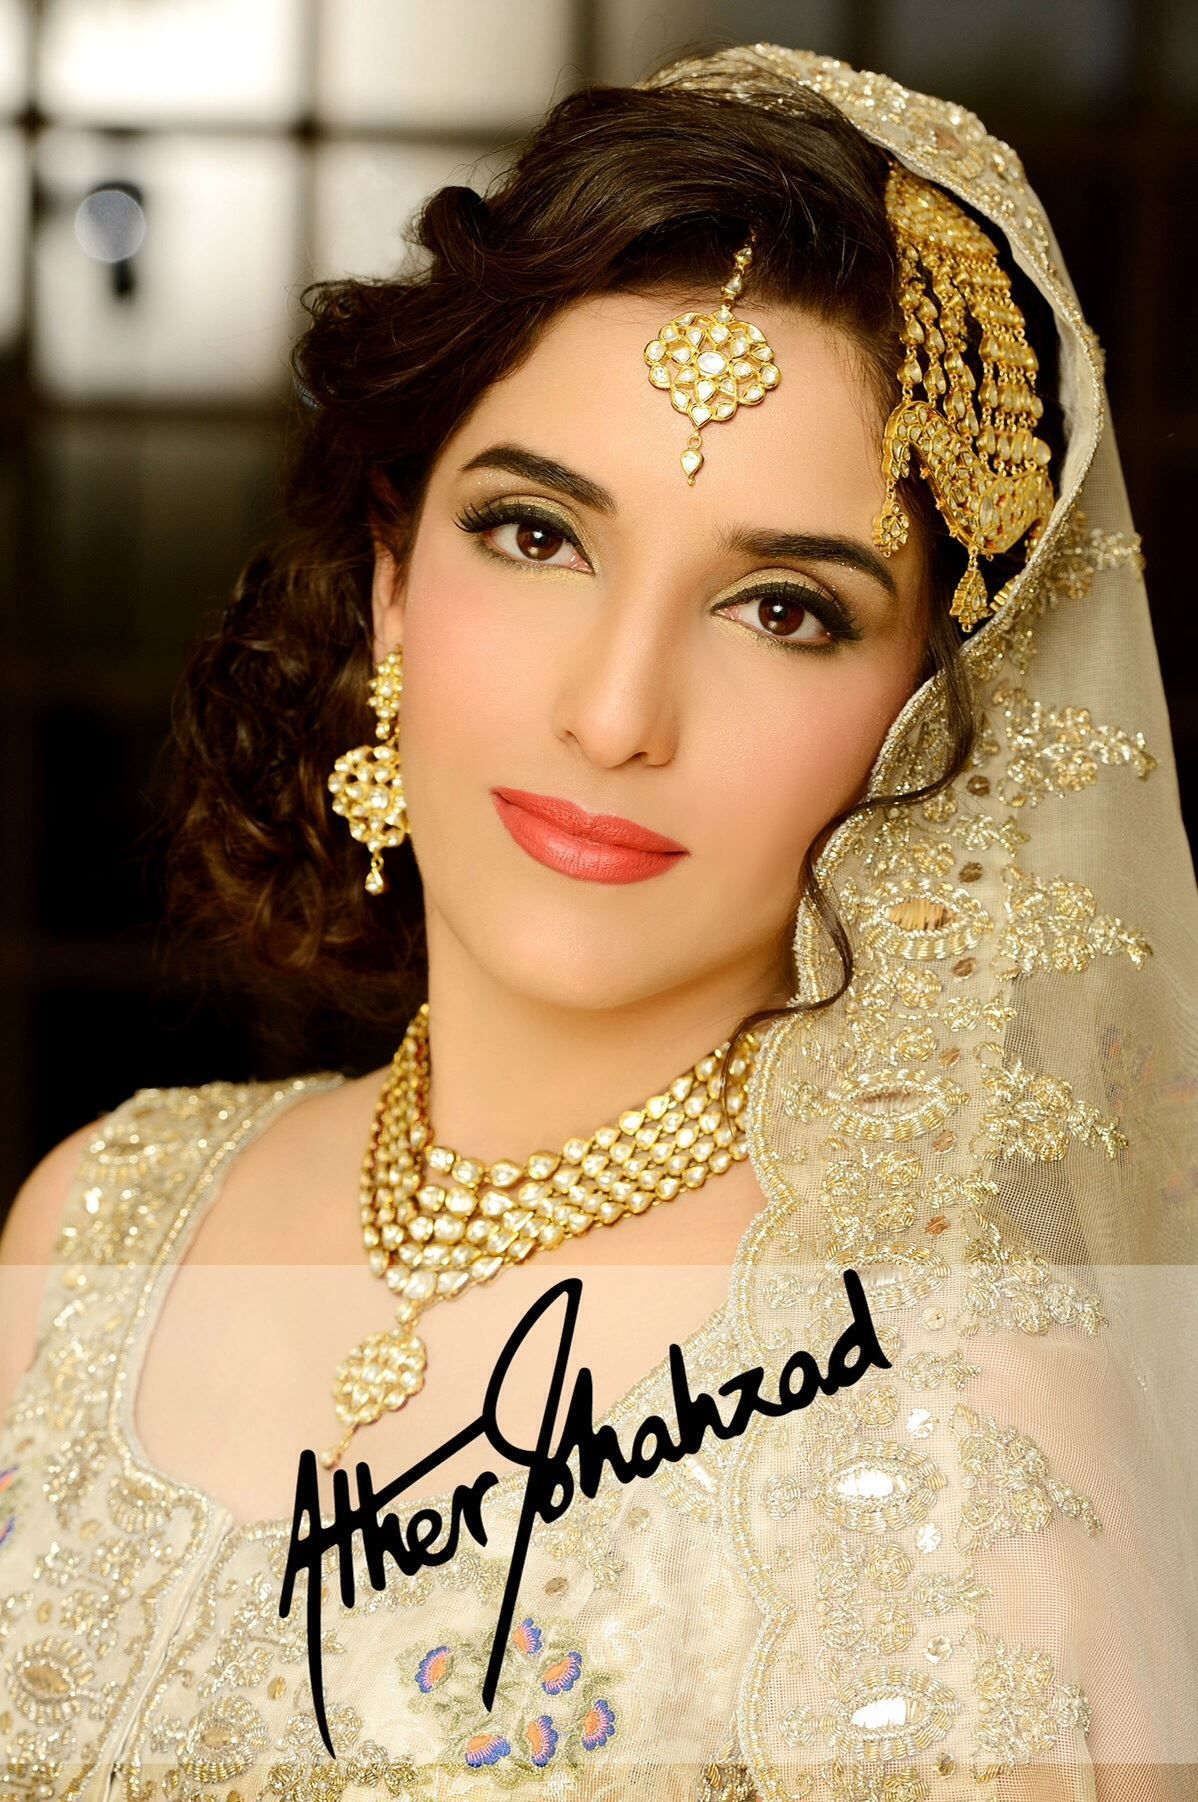 barat bride makeup and photography by ather shahzad | soft look